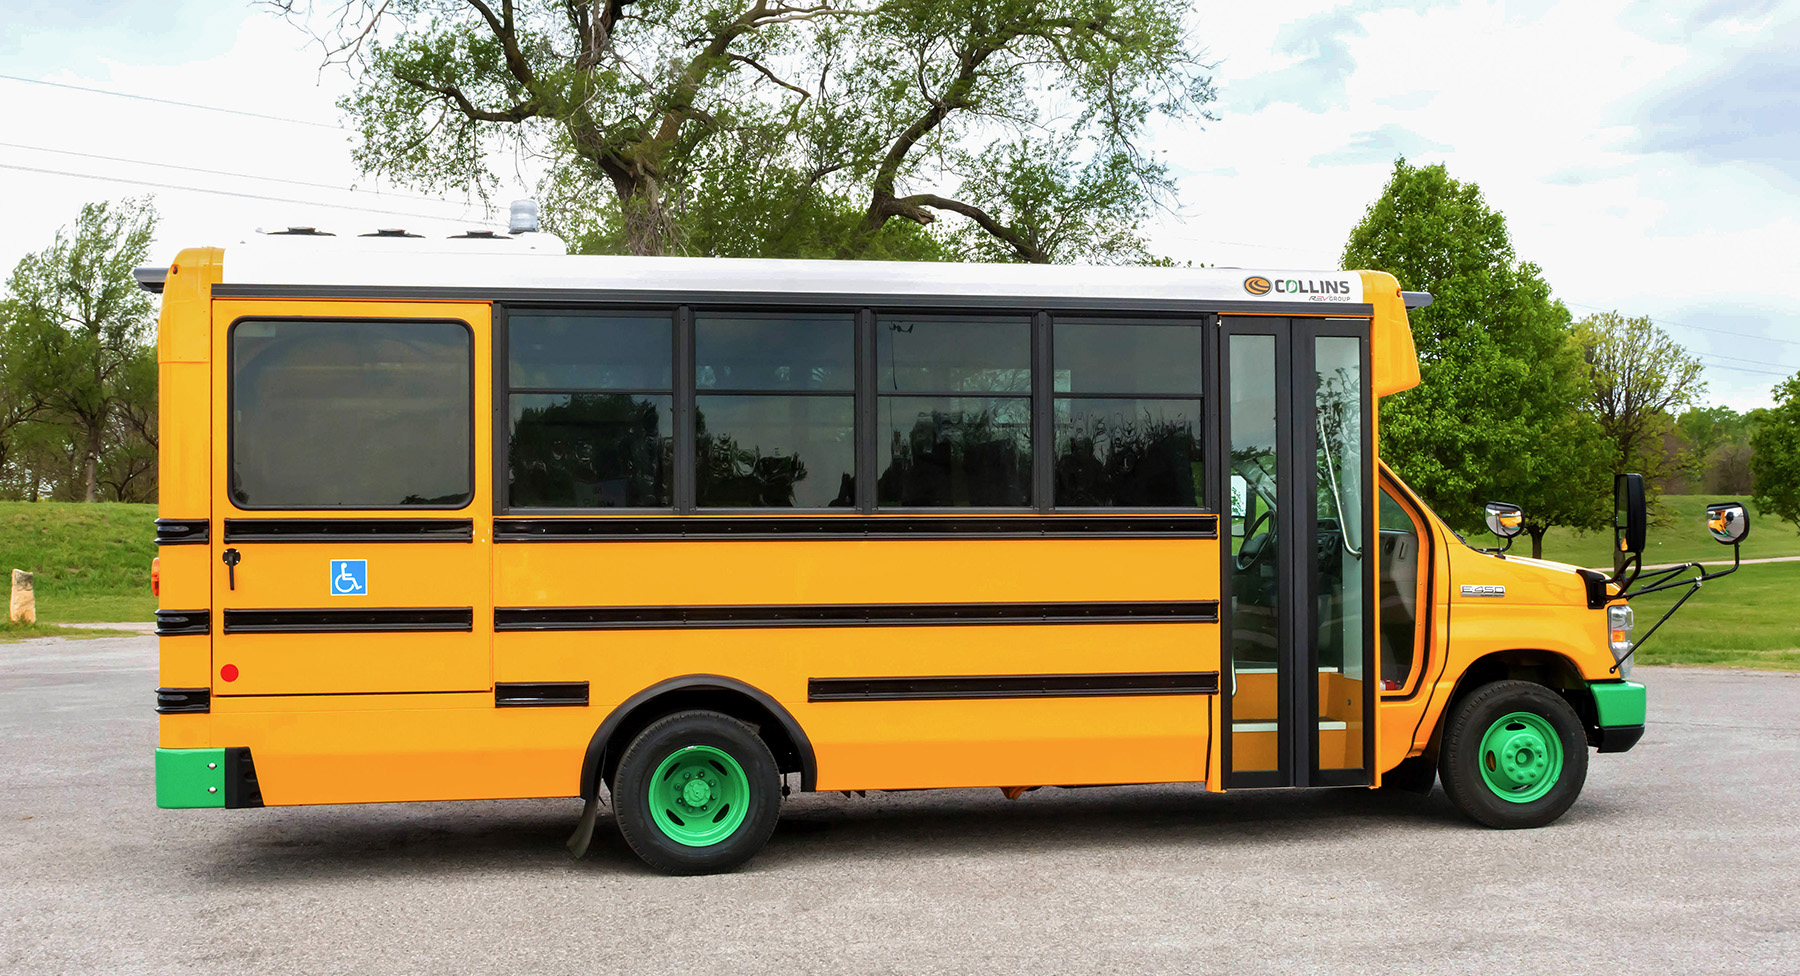 Lightning eMotors Enters the Electric School Bus Space with Multiyear Agreement with REV Group's Collins Bus